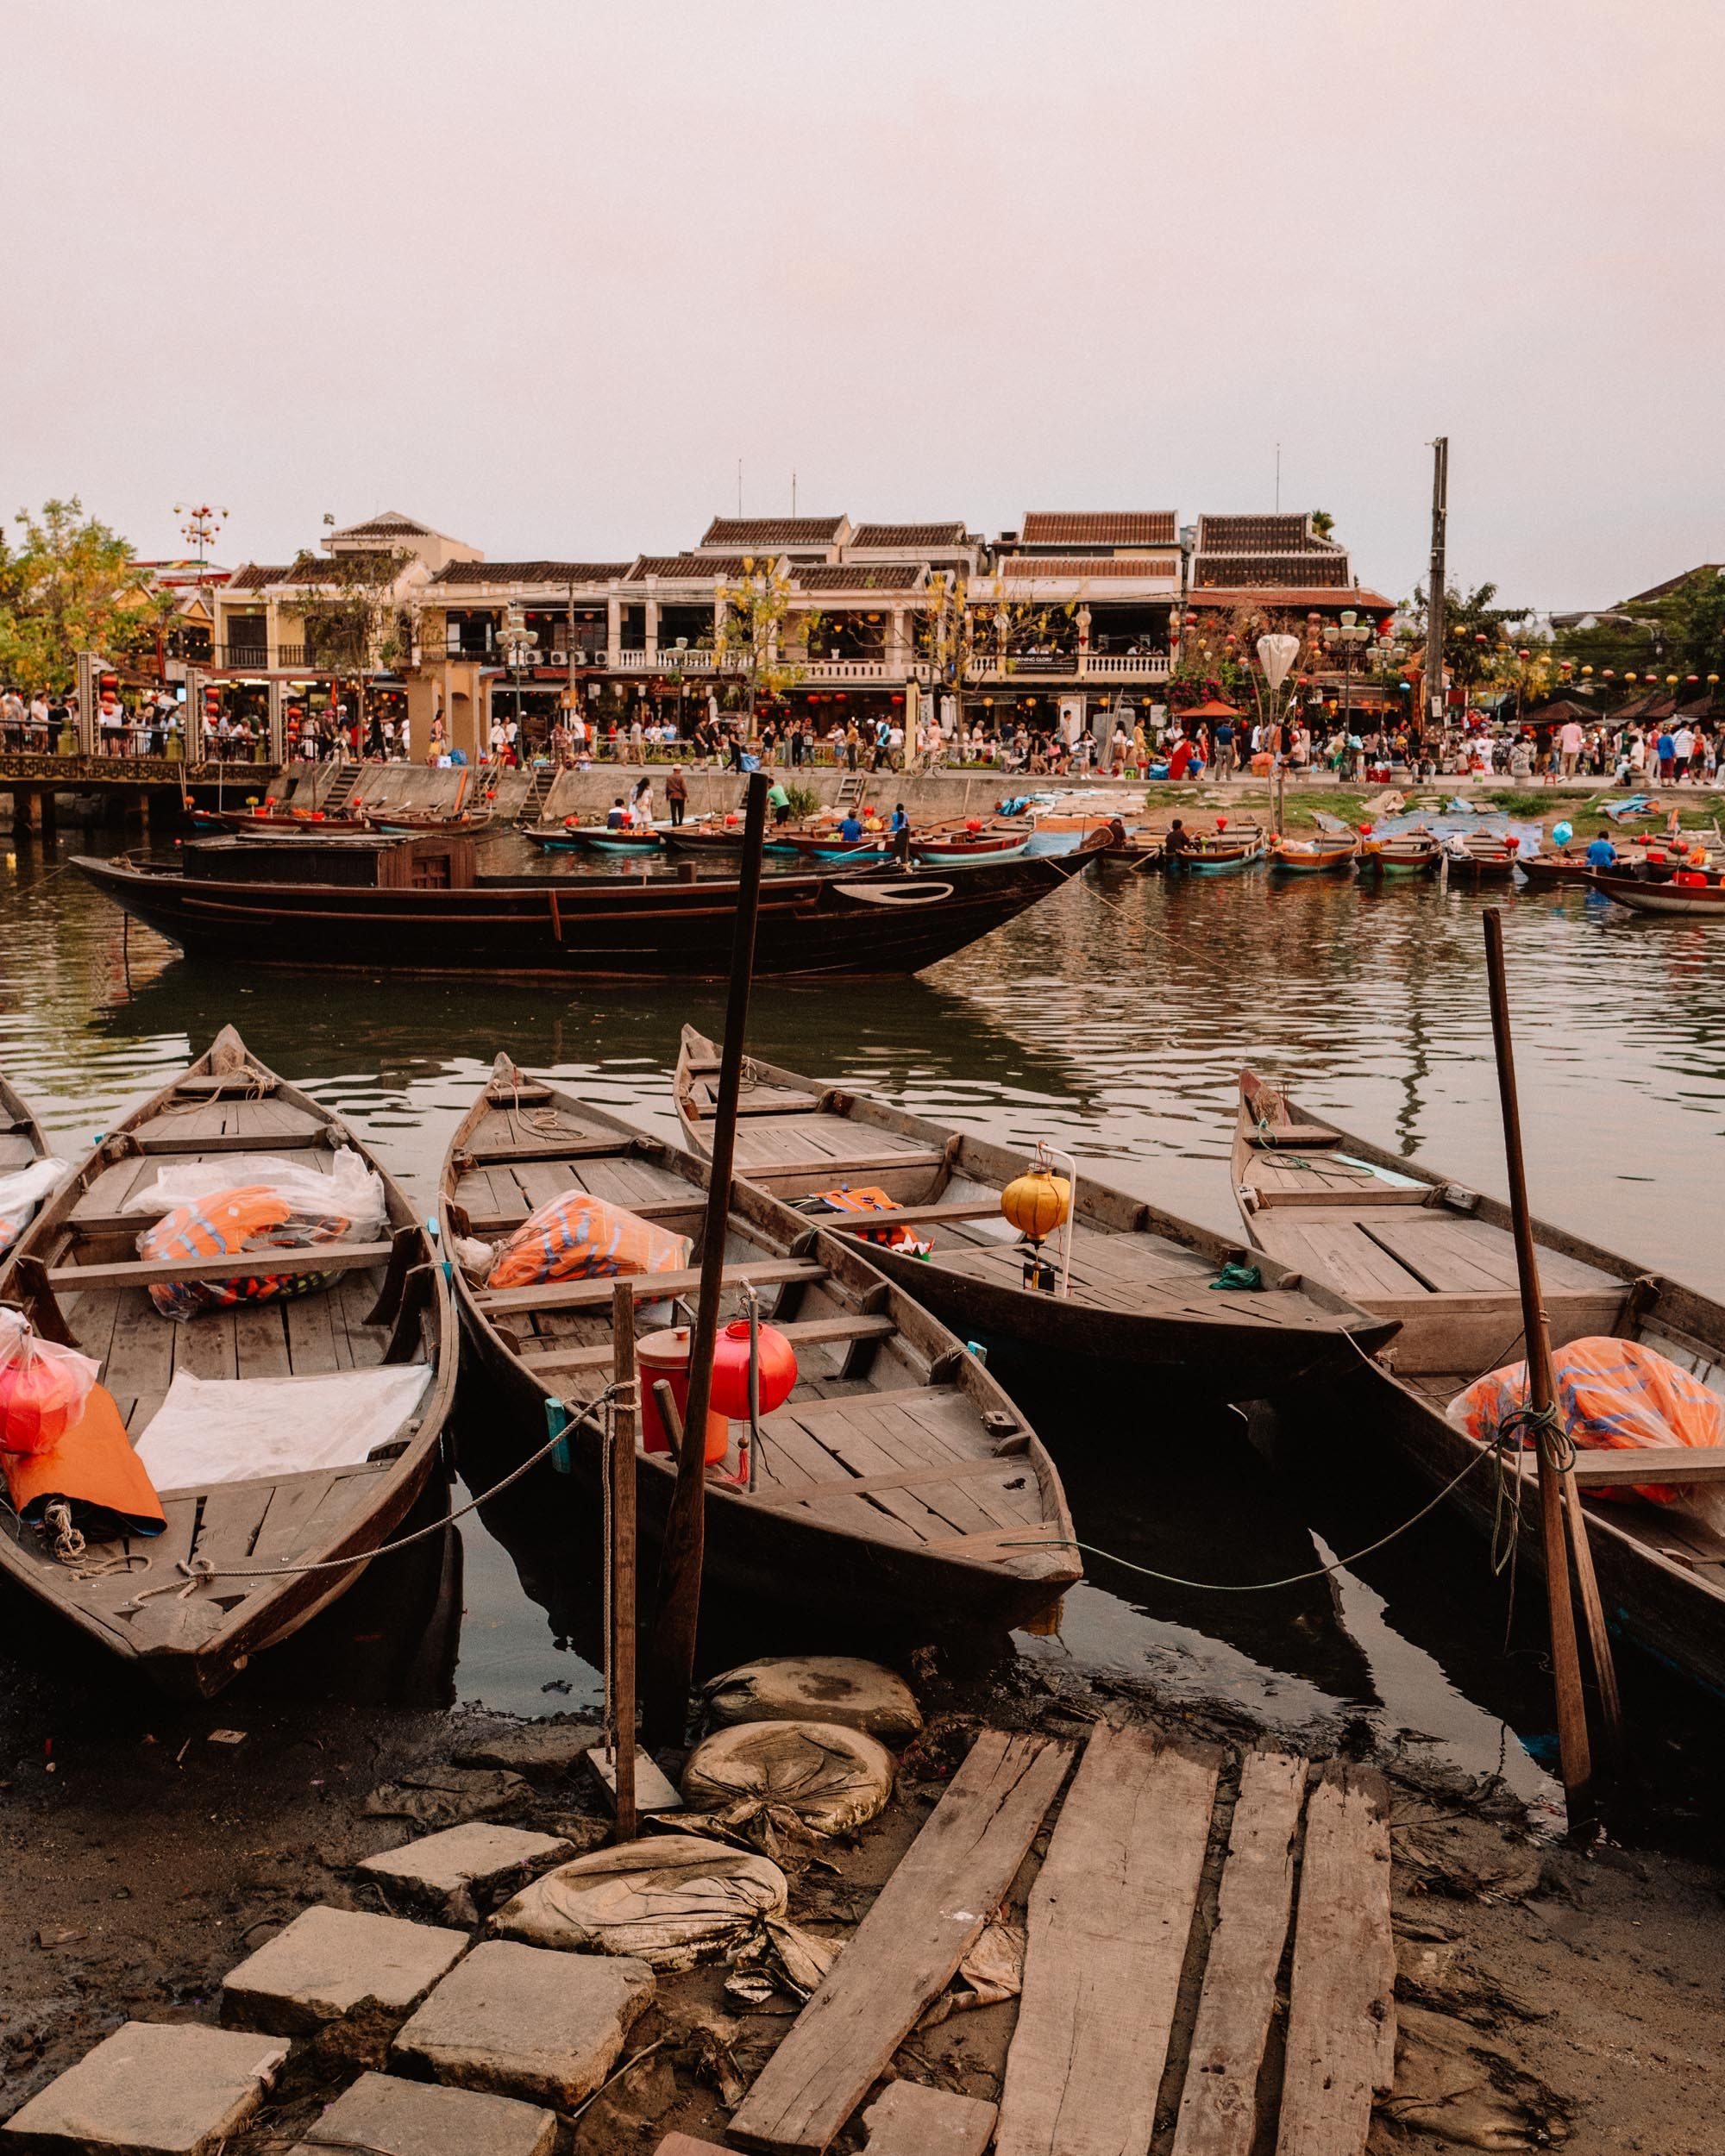 Lanterns and boats at night in Hoi An Vietnam